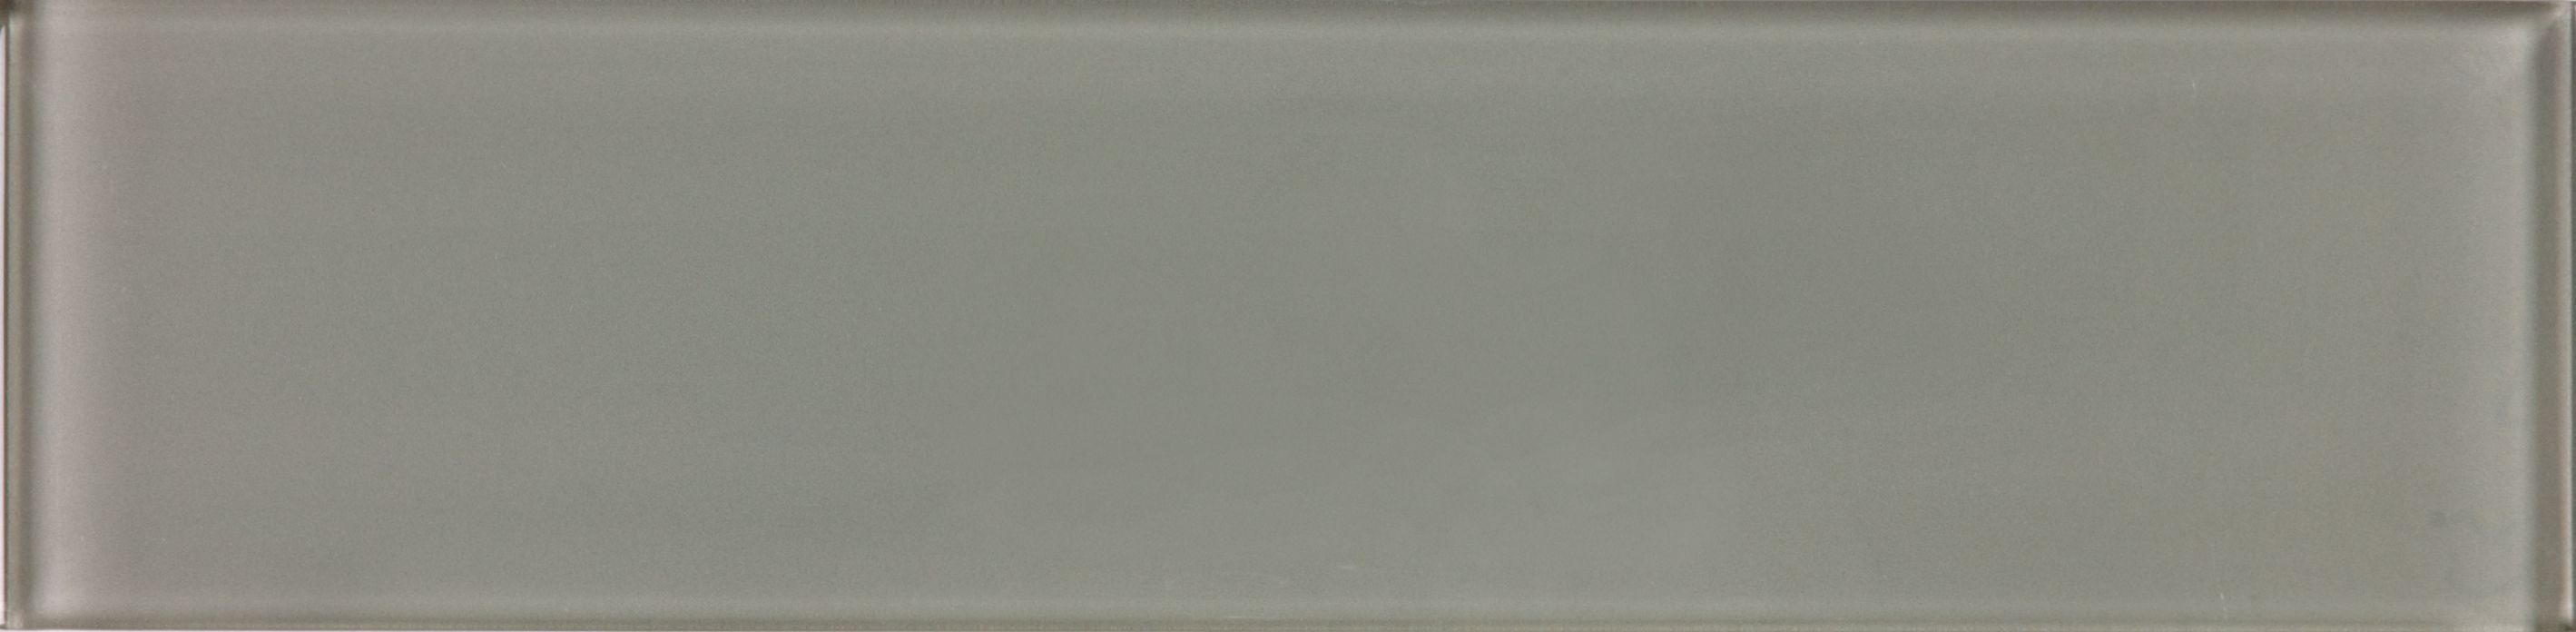 Allen Roth Smoke Glass Wall Tile Common 3 In X 12 In